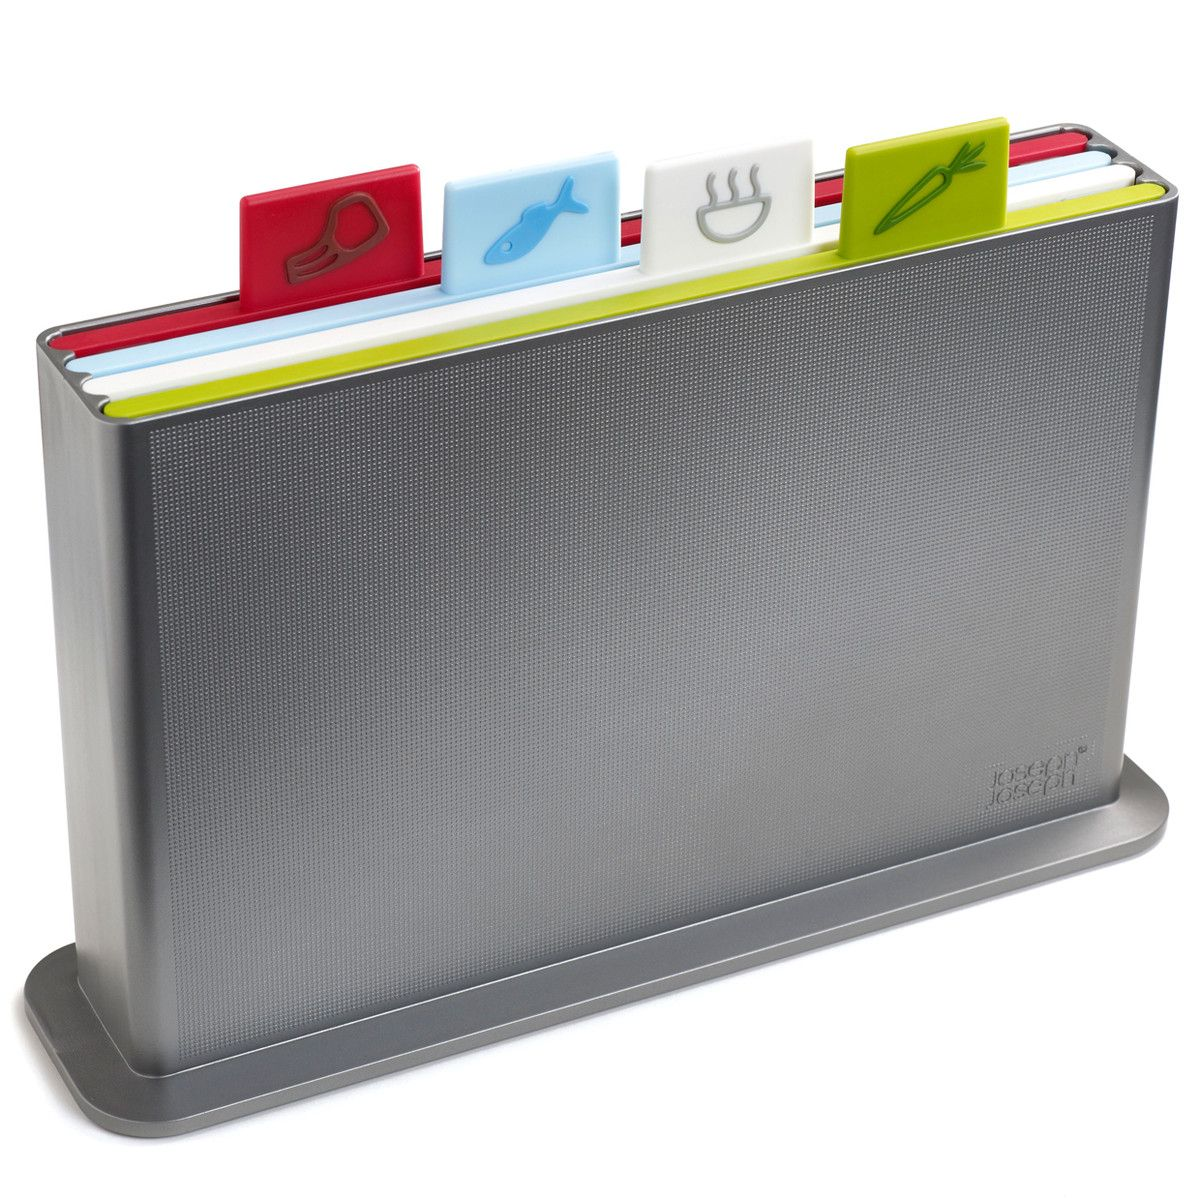 Joseph Joseph Tagliere Index Advance Silver Cutting Boards We Actually Own This Picked